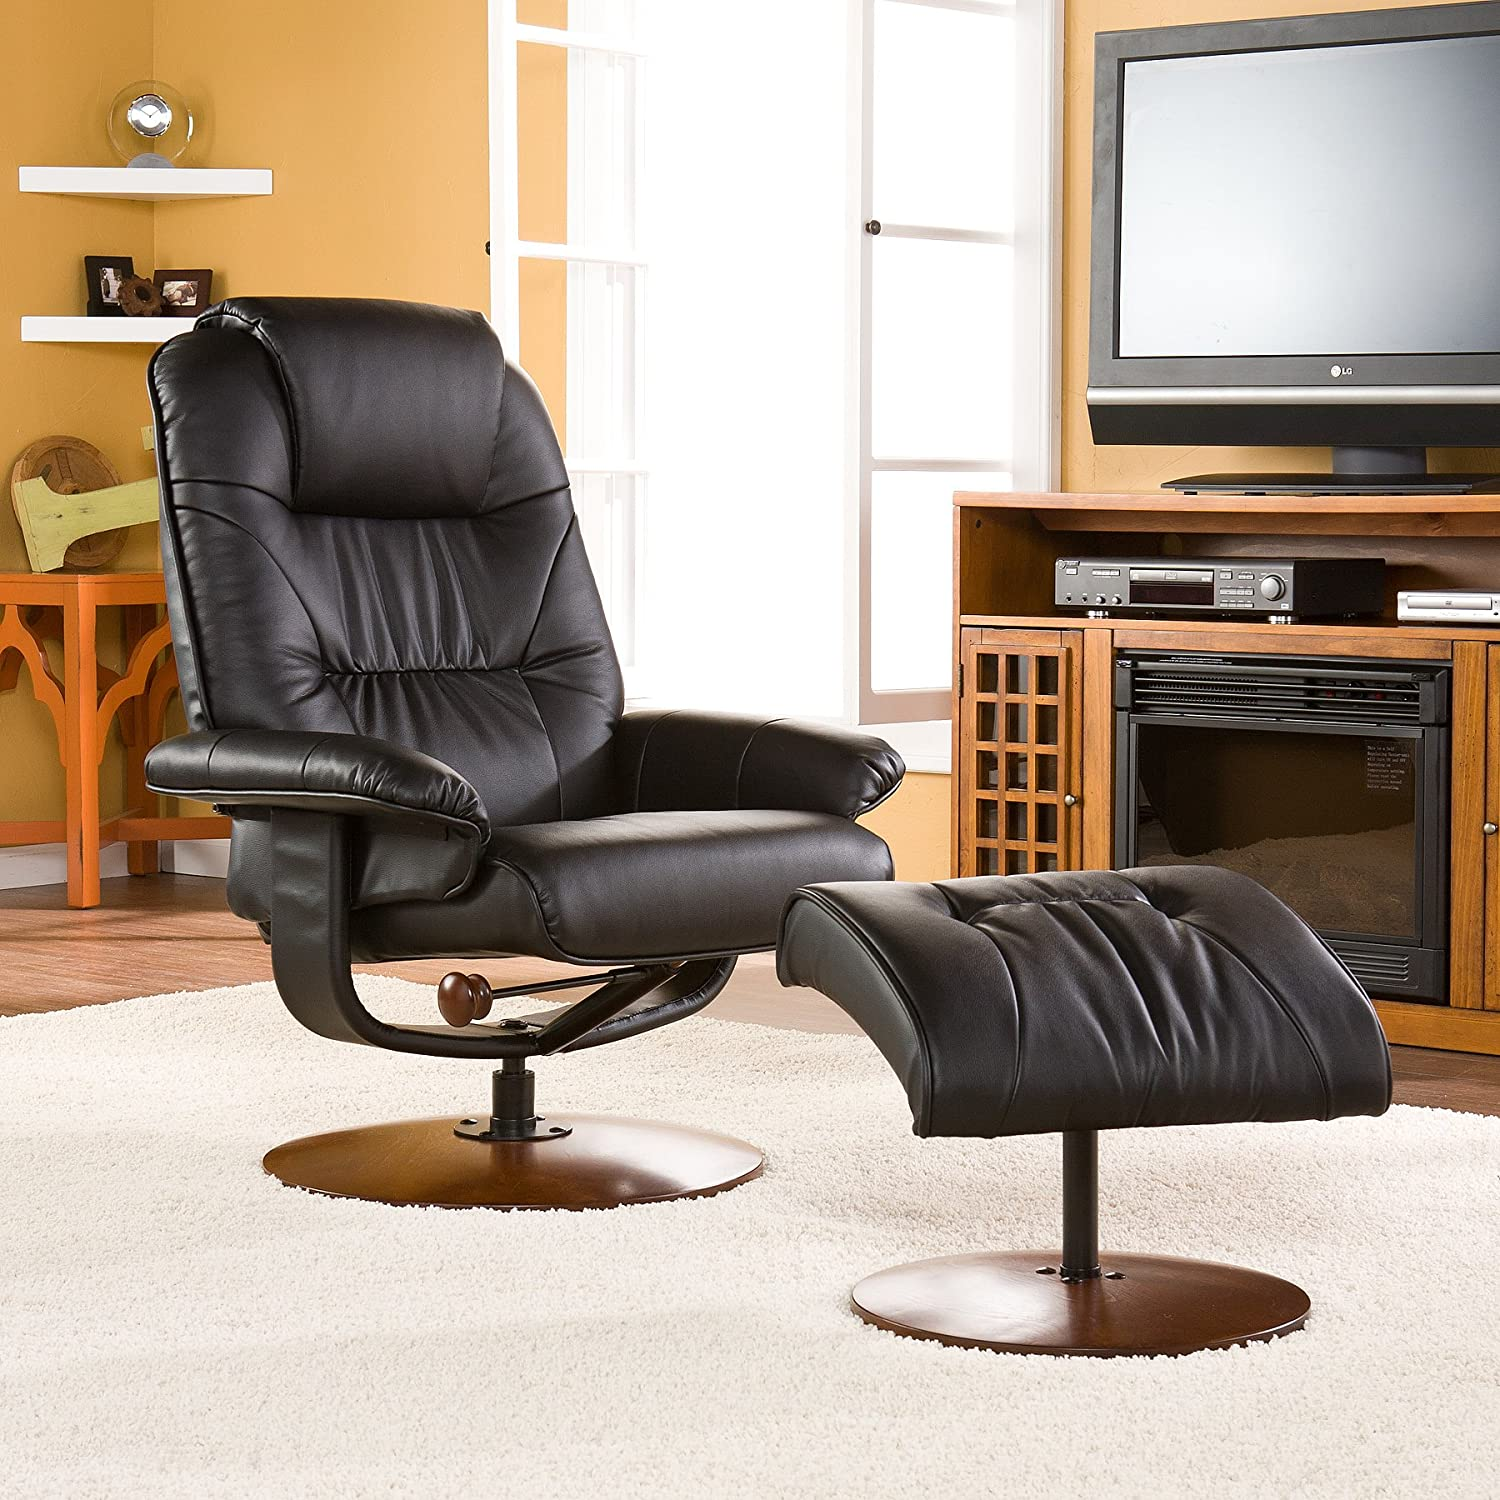 Amazon.com Bonded Leather Recliner and Ottoman - Black Kitchen u0026 Dining & Amazon.com: Bonded Leather Recliner and Ottoman - Black: Kitchen ... islam-shia.org